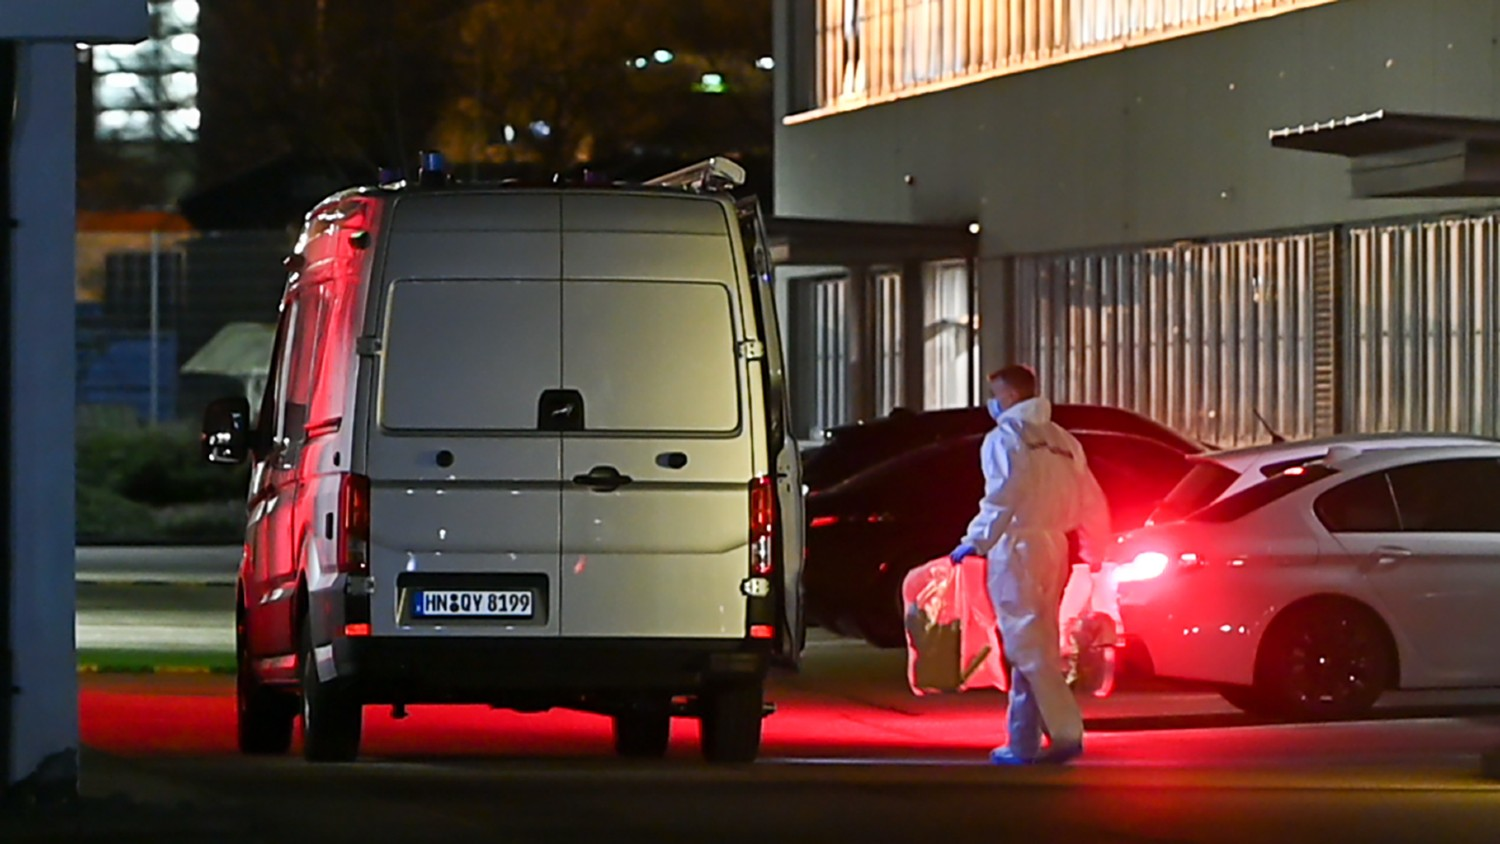 Three injured in explosion at Lidl's German headquarters